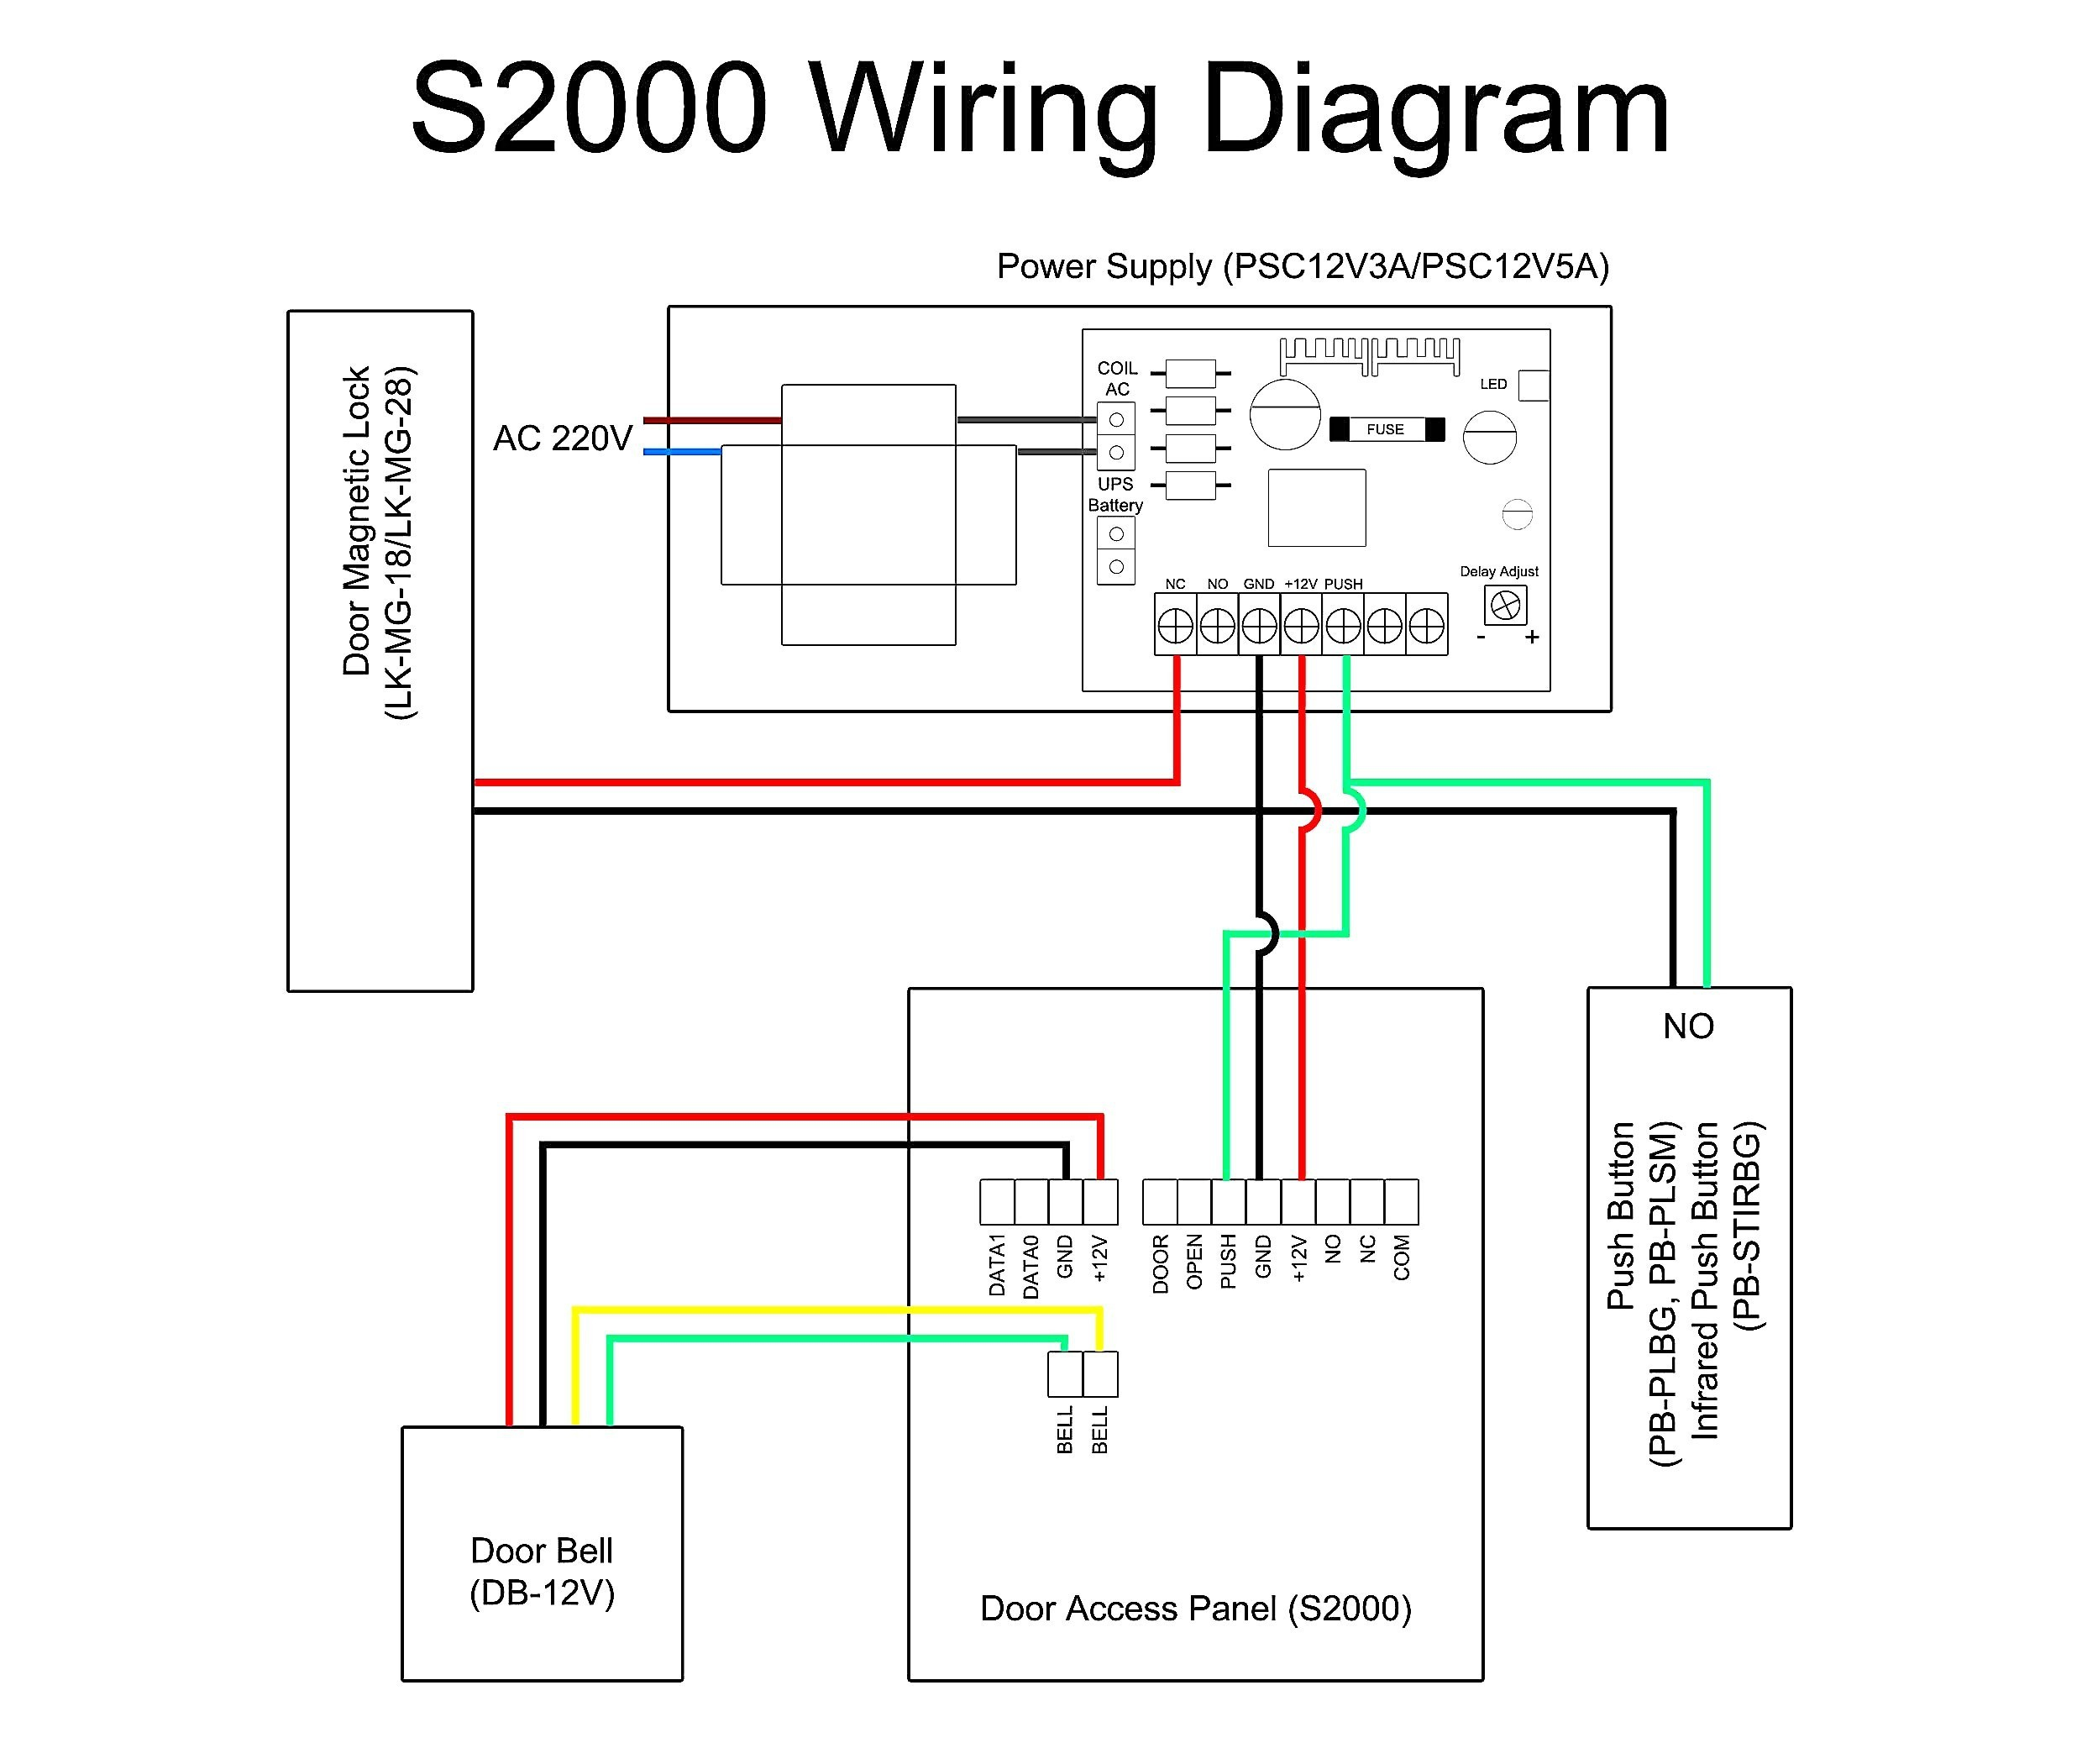 get sensormatic wiring diagram download. Black Bedroom Furniture Sets. Home Design Ideas